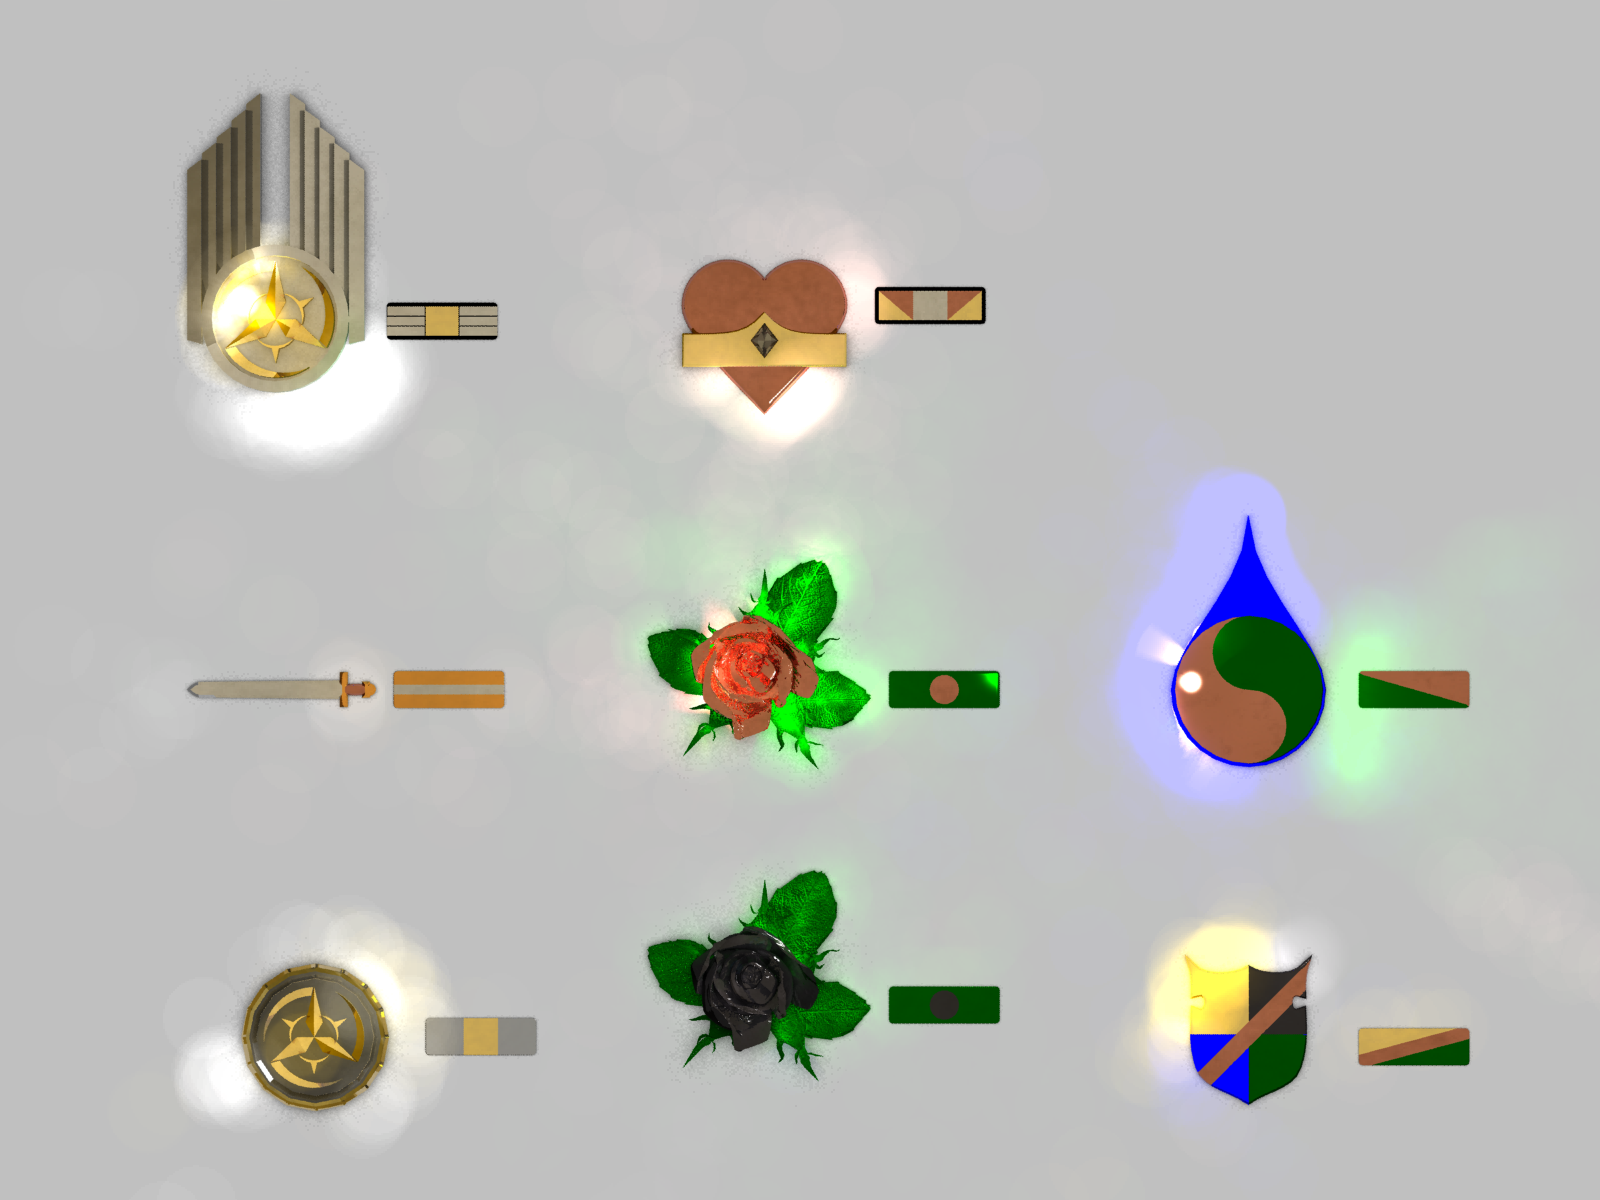 Medals of the Levan Empire (WIP) by LordDanieltheGrey